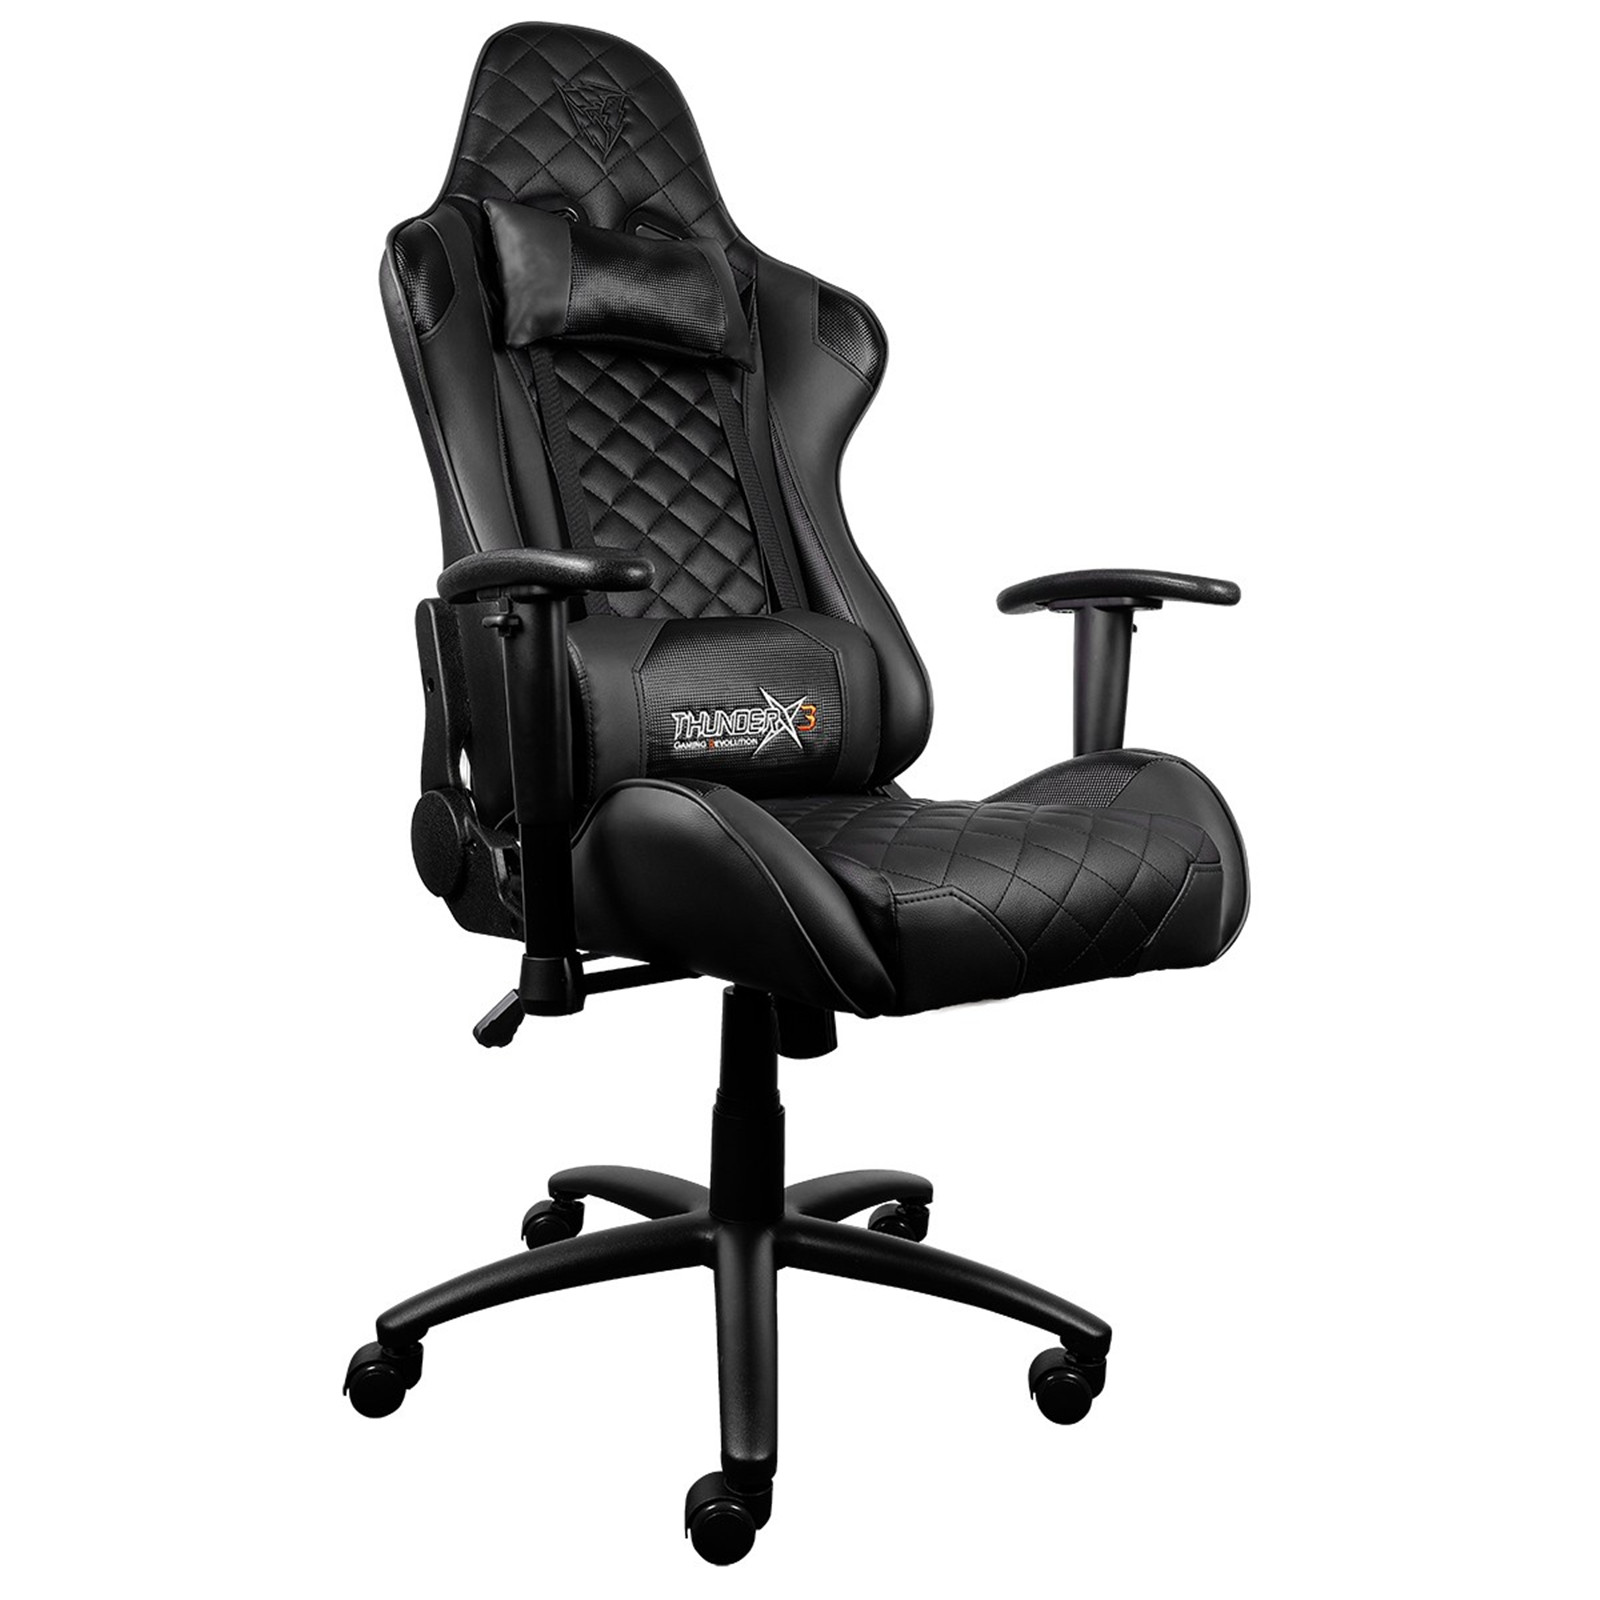 Surprising Buy The Thunderx3 Tgc12 Gaming Chair Black Tegc Lamtechconsult Wood Chair Design Ideas Lamtechconsultcom